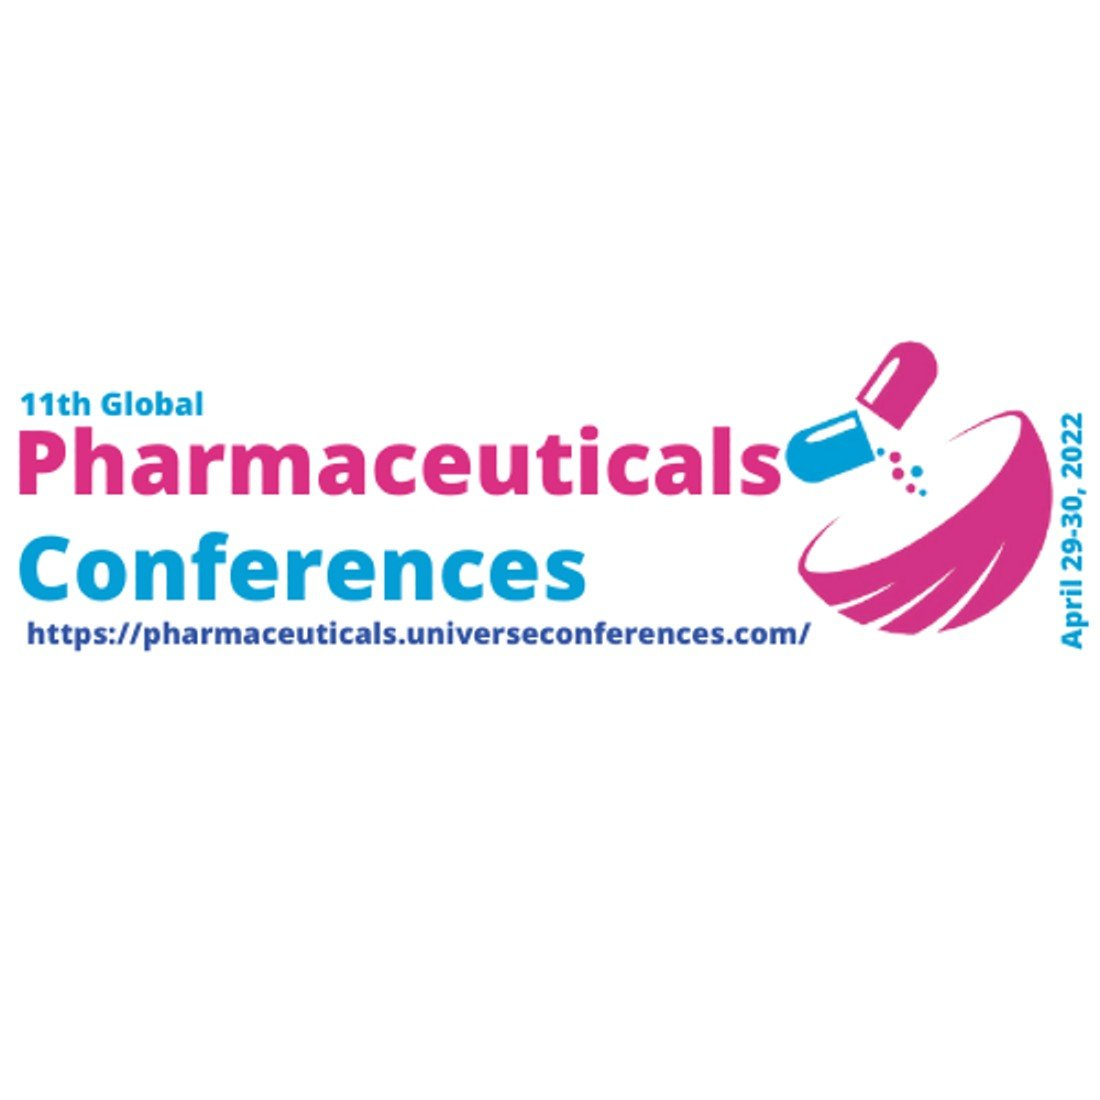 11th UCG Edition on Pharmaceuticals & Pharmacy Networking Conferences, 29 April   Event in Bur Dubai   AllEvents.in